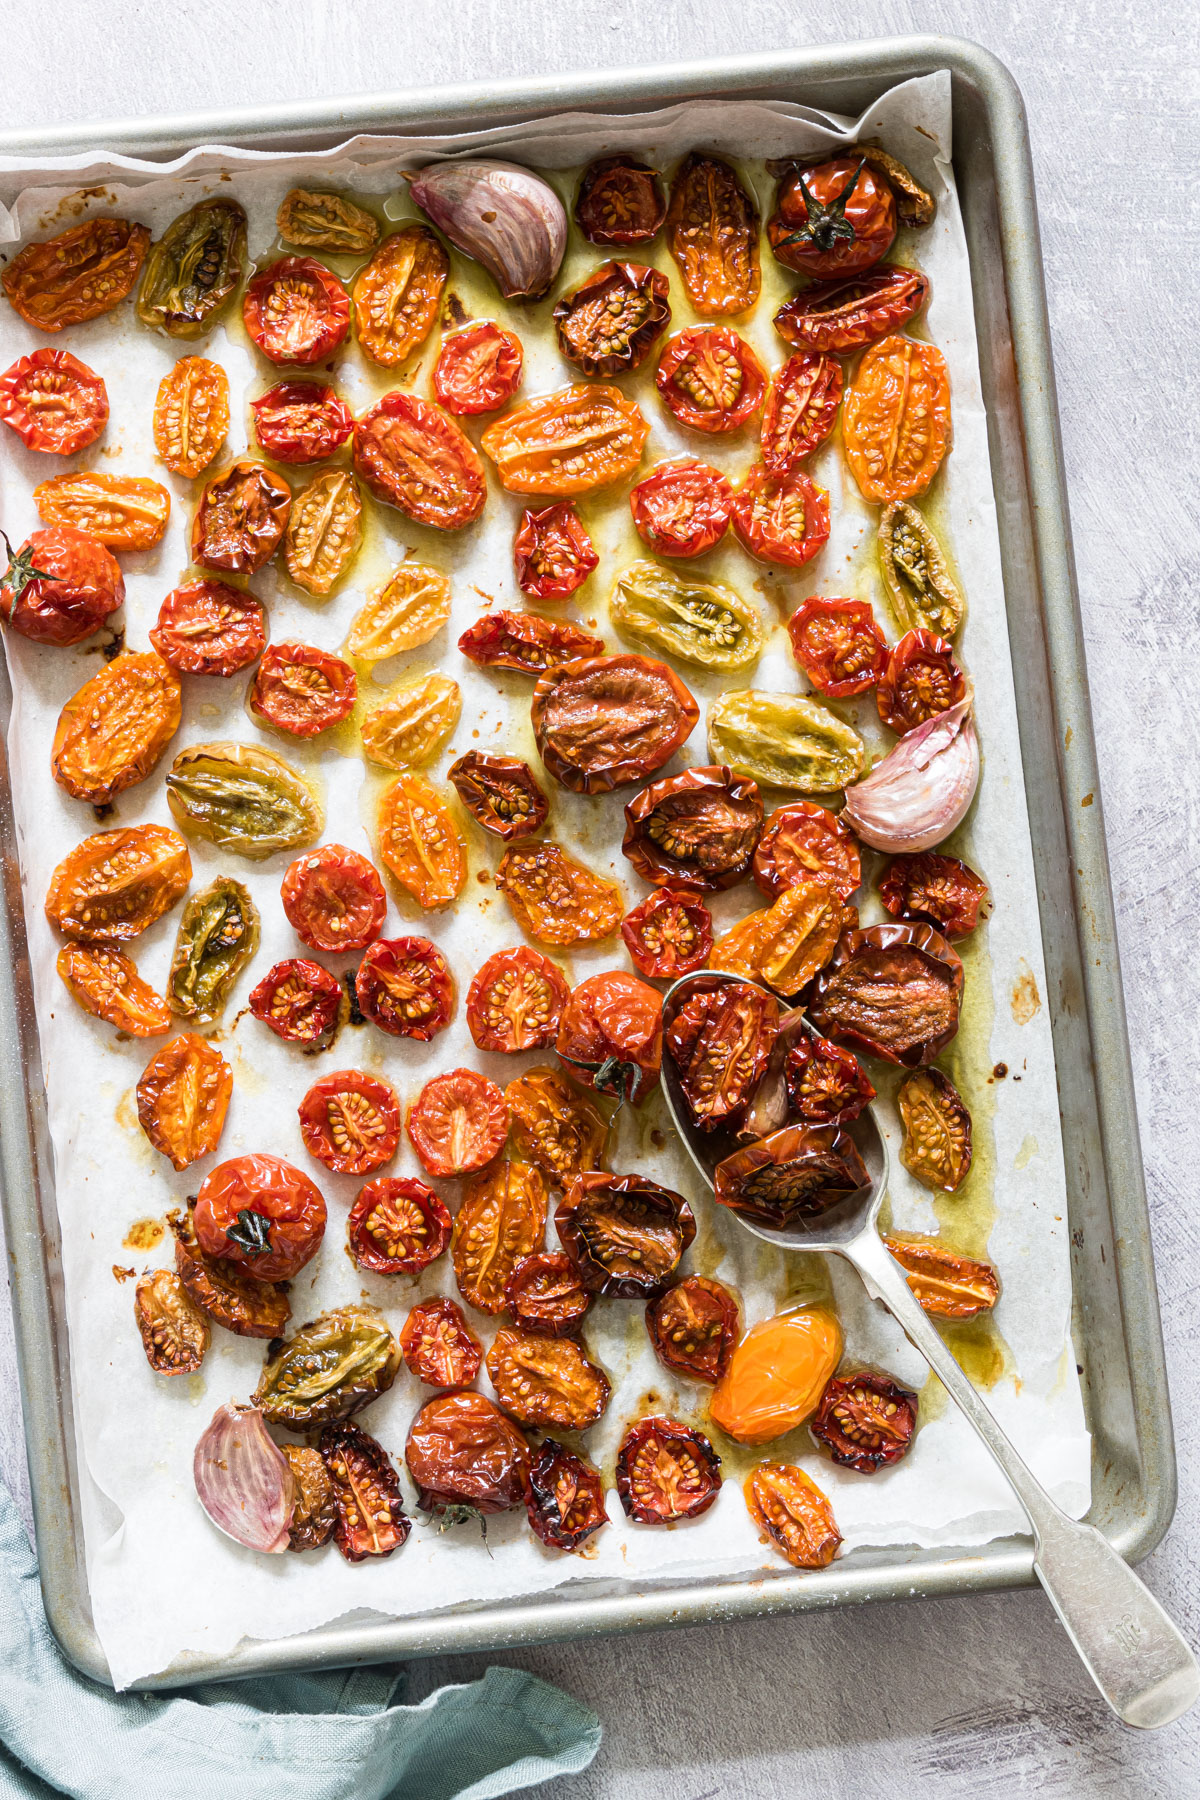 a baking tray of multi colored slow roasted tomatoes and garlic